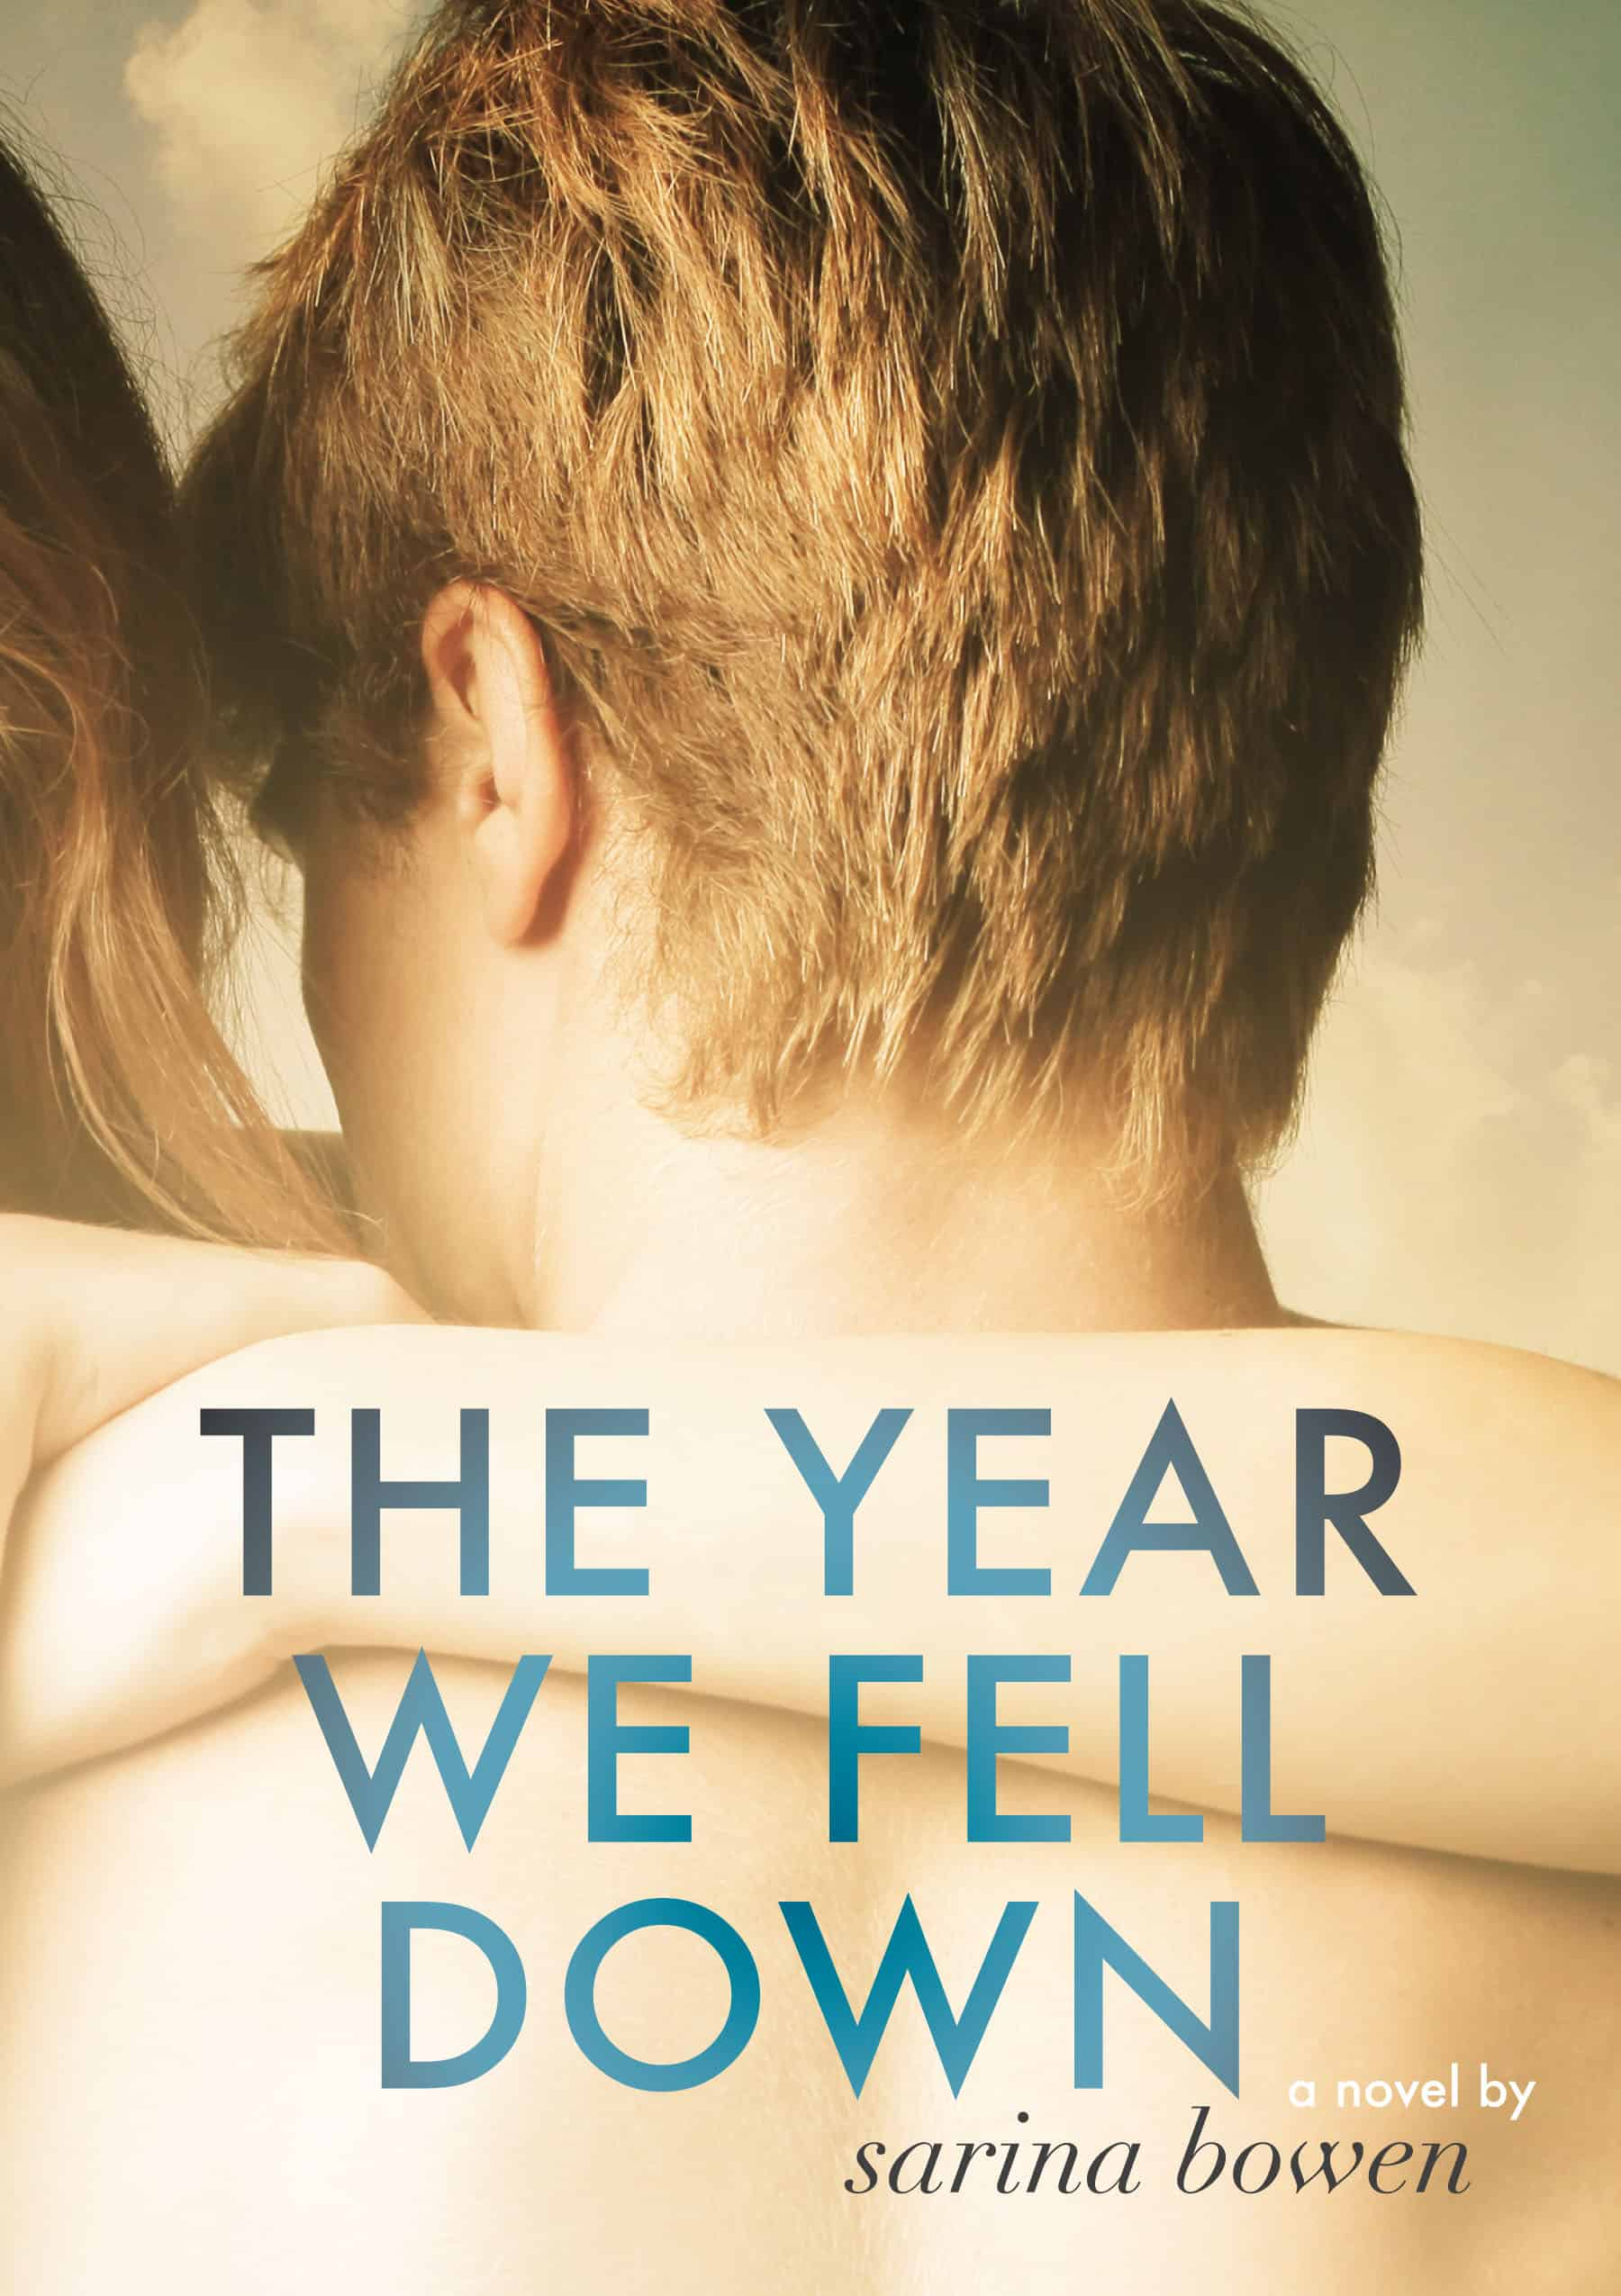 Happy Friday! Oh, I'm so happy it's Friday! My heart leaps at the prospect of a weekend in front of me. Today, we have Sarina Bowen's cover reveal for THE YEAR WE FELL DOWN. This is also New Adult but for those who love romance AND hot hockey players, this ones for you. THE YEAR […]